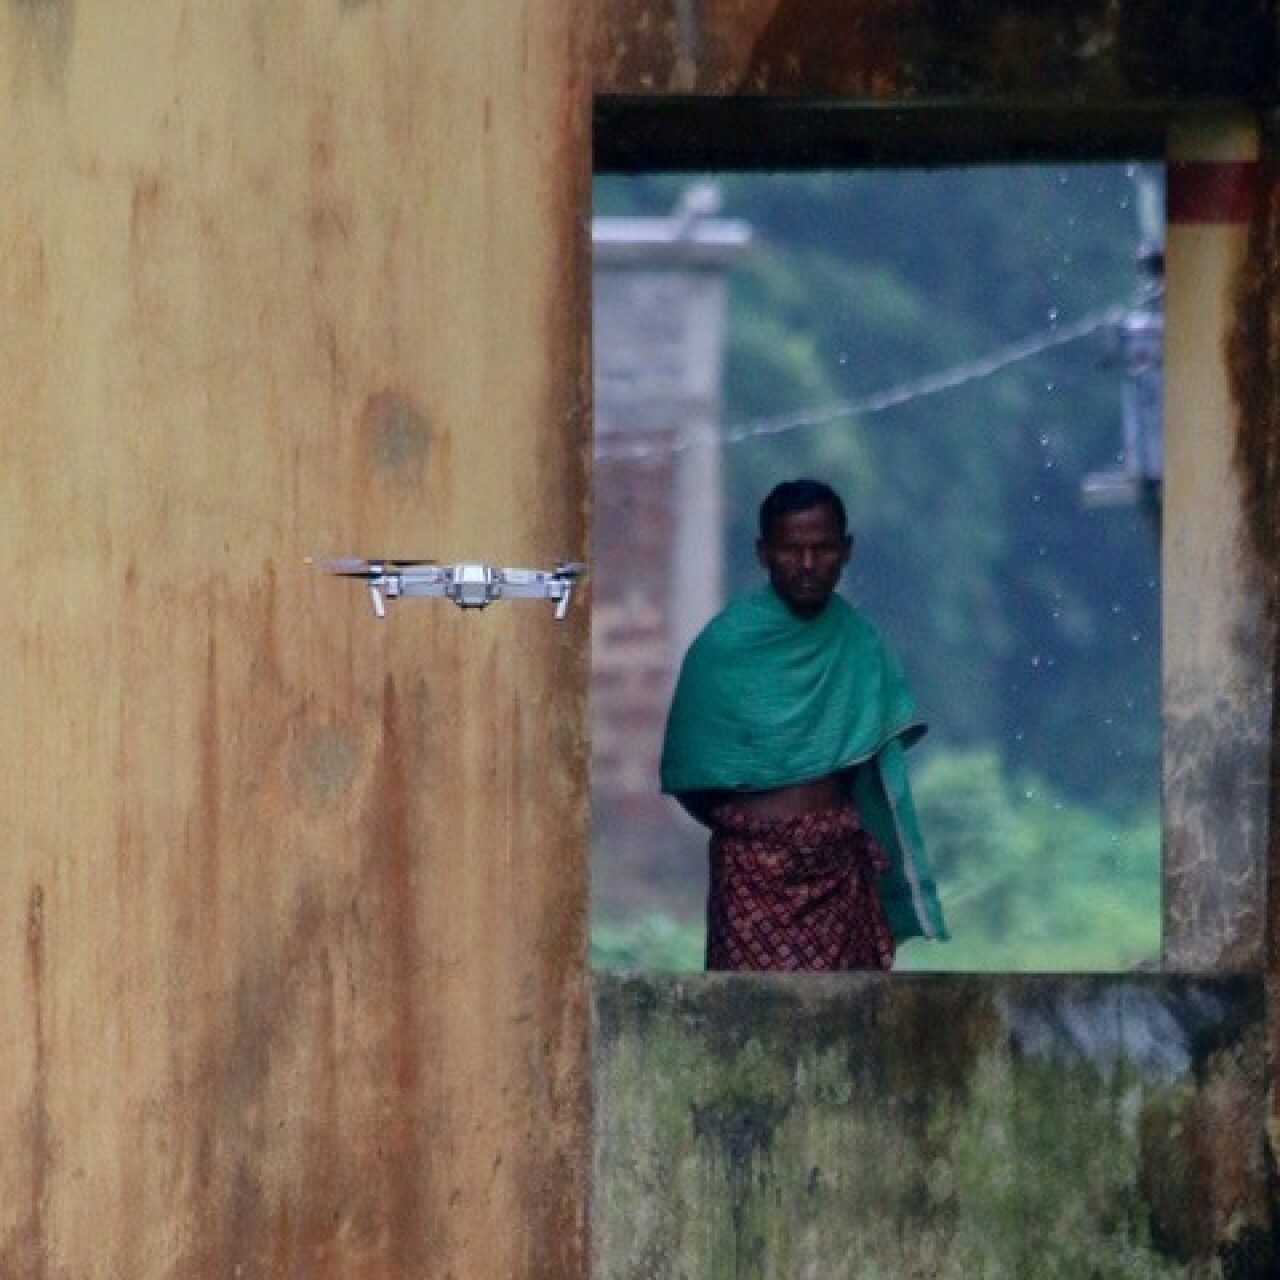 a small drone is flying in the foreground. There is a small building with an opening and a man is looking at the photographer; rain is falling in the background.